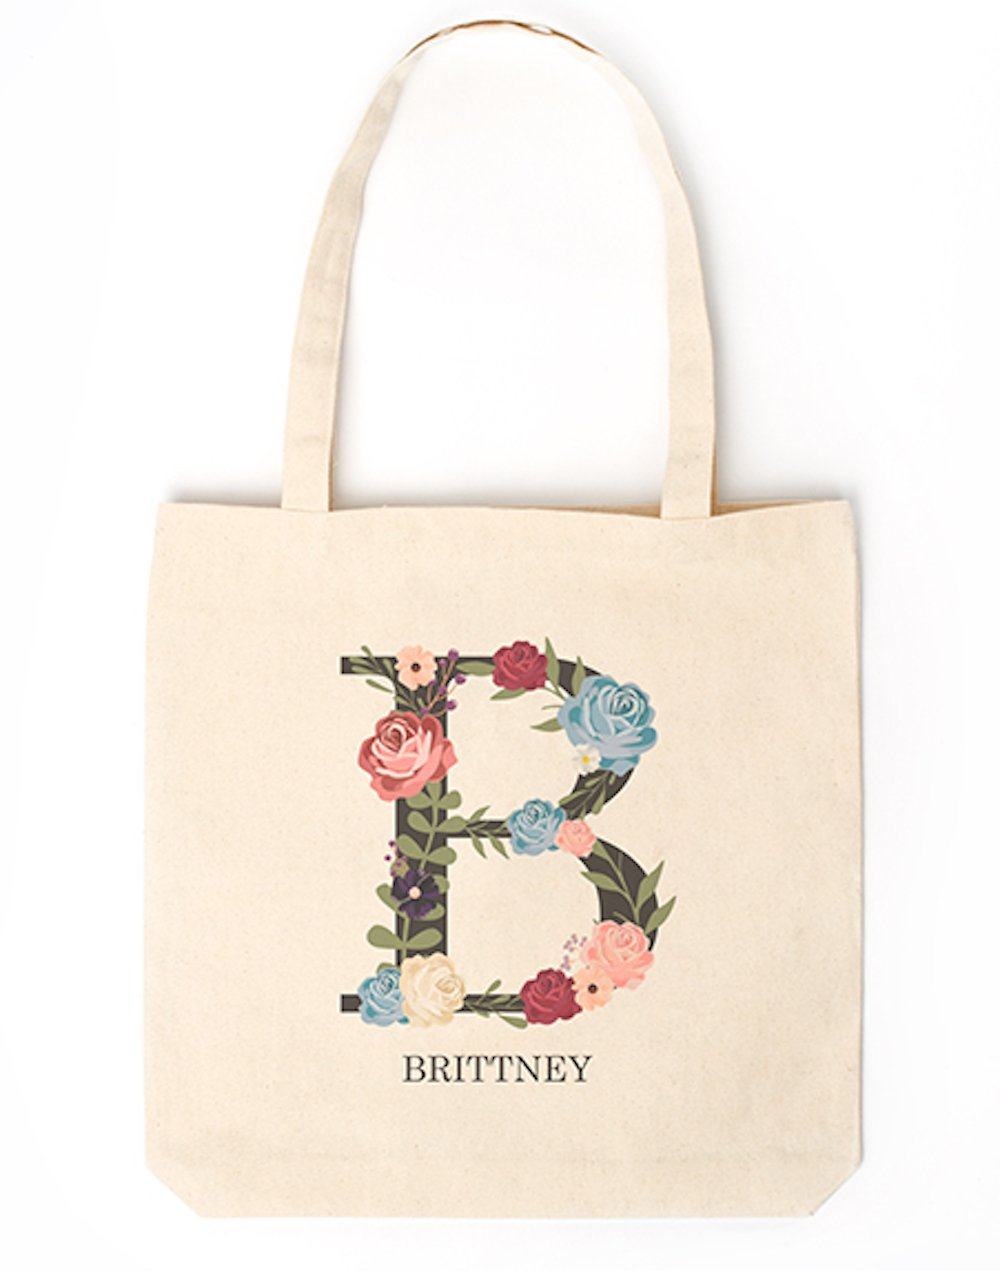 Personalized Monogram Tote - Unique Monogrammed Tote Bags Gifts for Women, Also a Gift for Mom (Letter B)